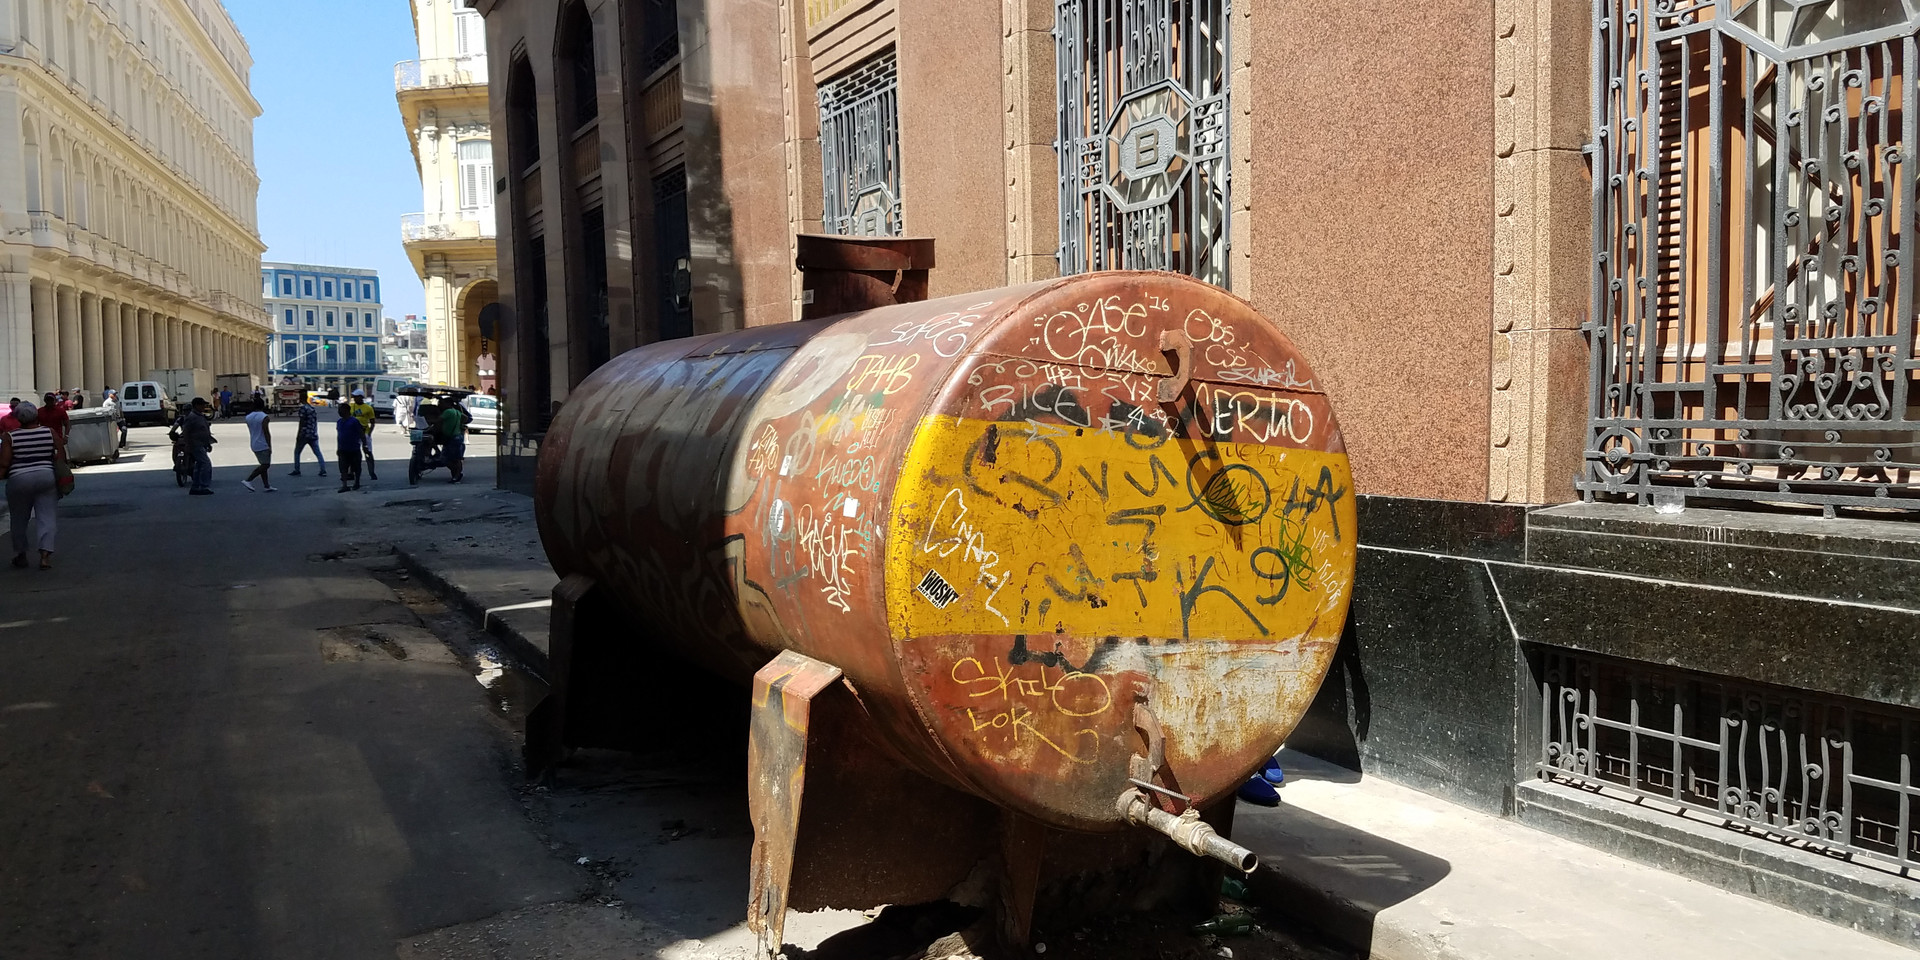 Septic tank in the streets